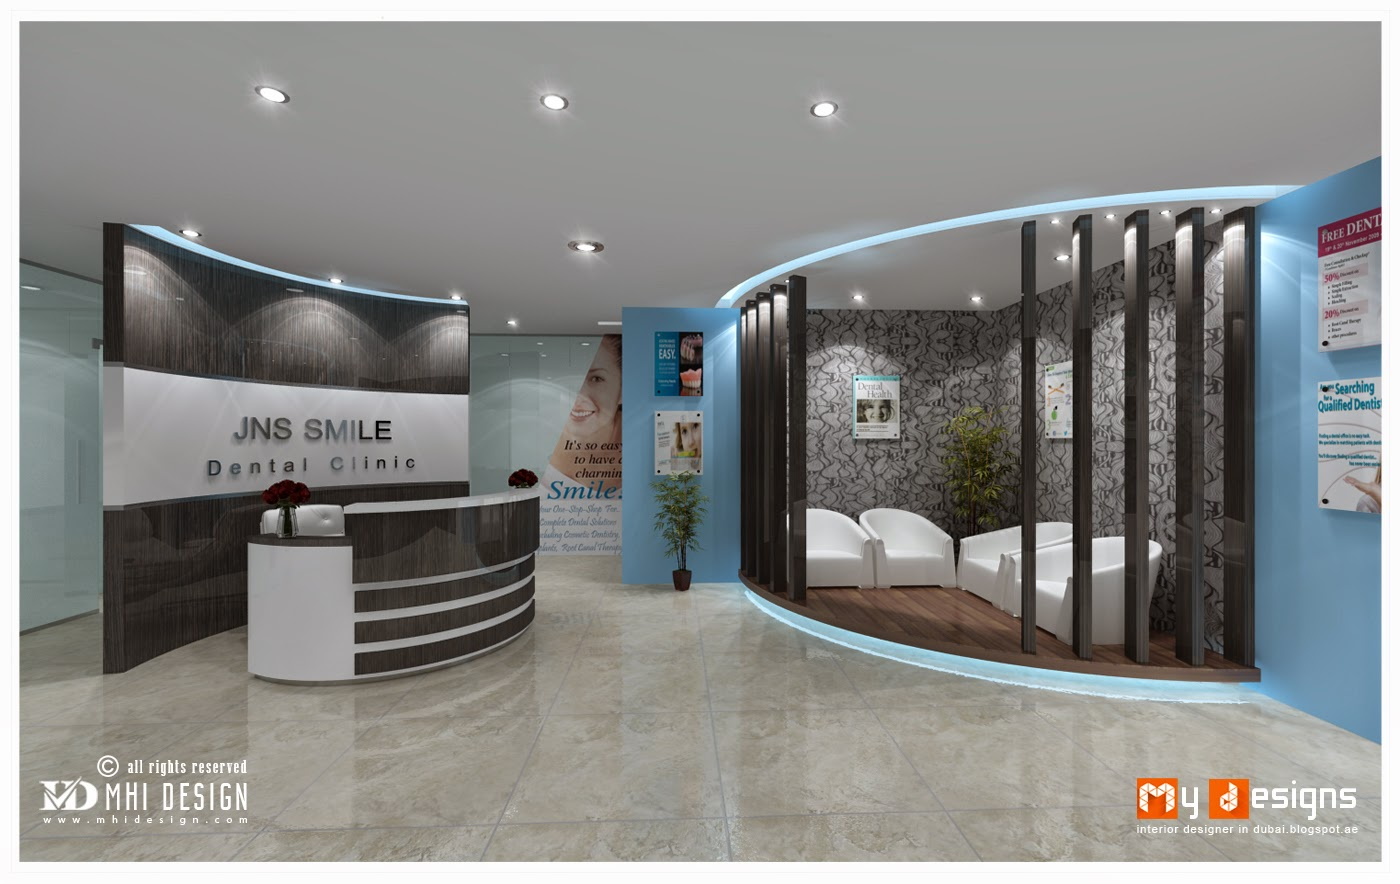 dental clinic interior design proposal for jns smile dental clinic one